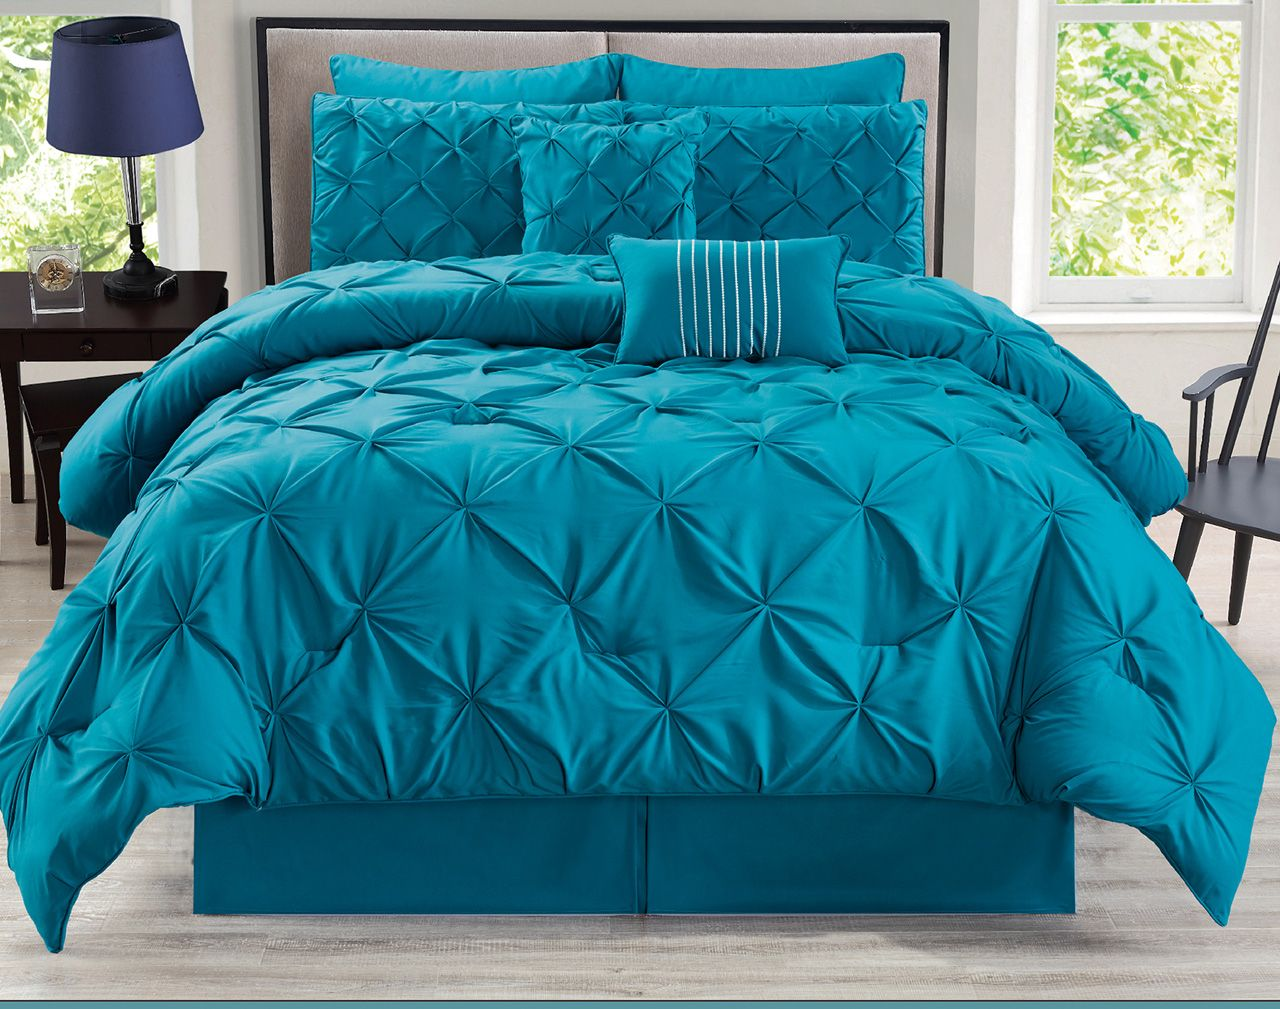 8 Piece Aubree Pinched Pleat Comforter Set